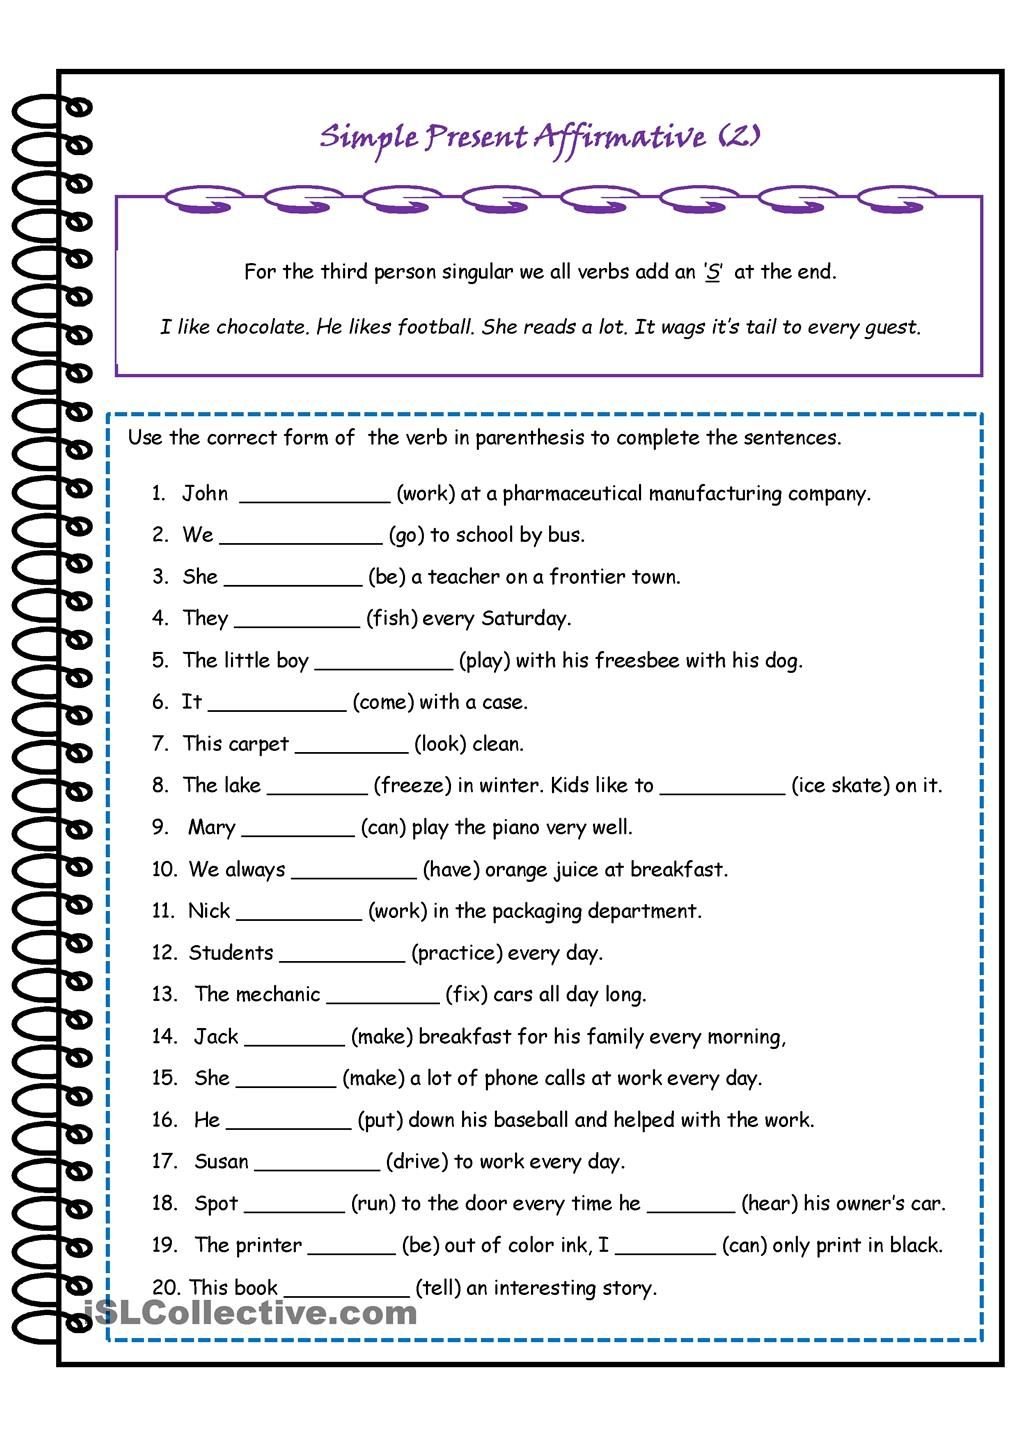 Simple Present Affirmative 3rd Person Singular – Beginner Esl Worksheets